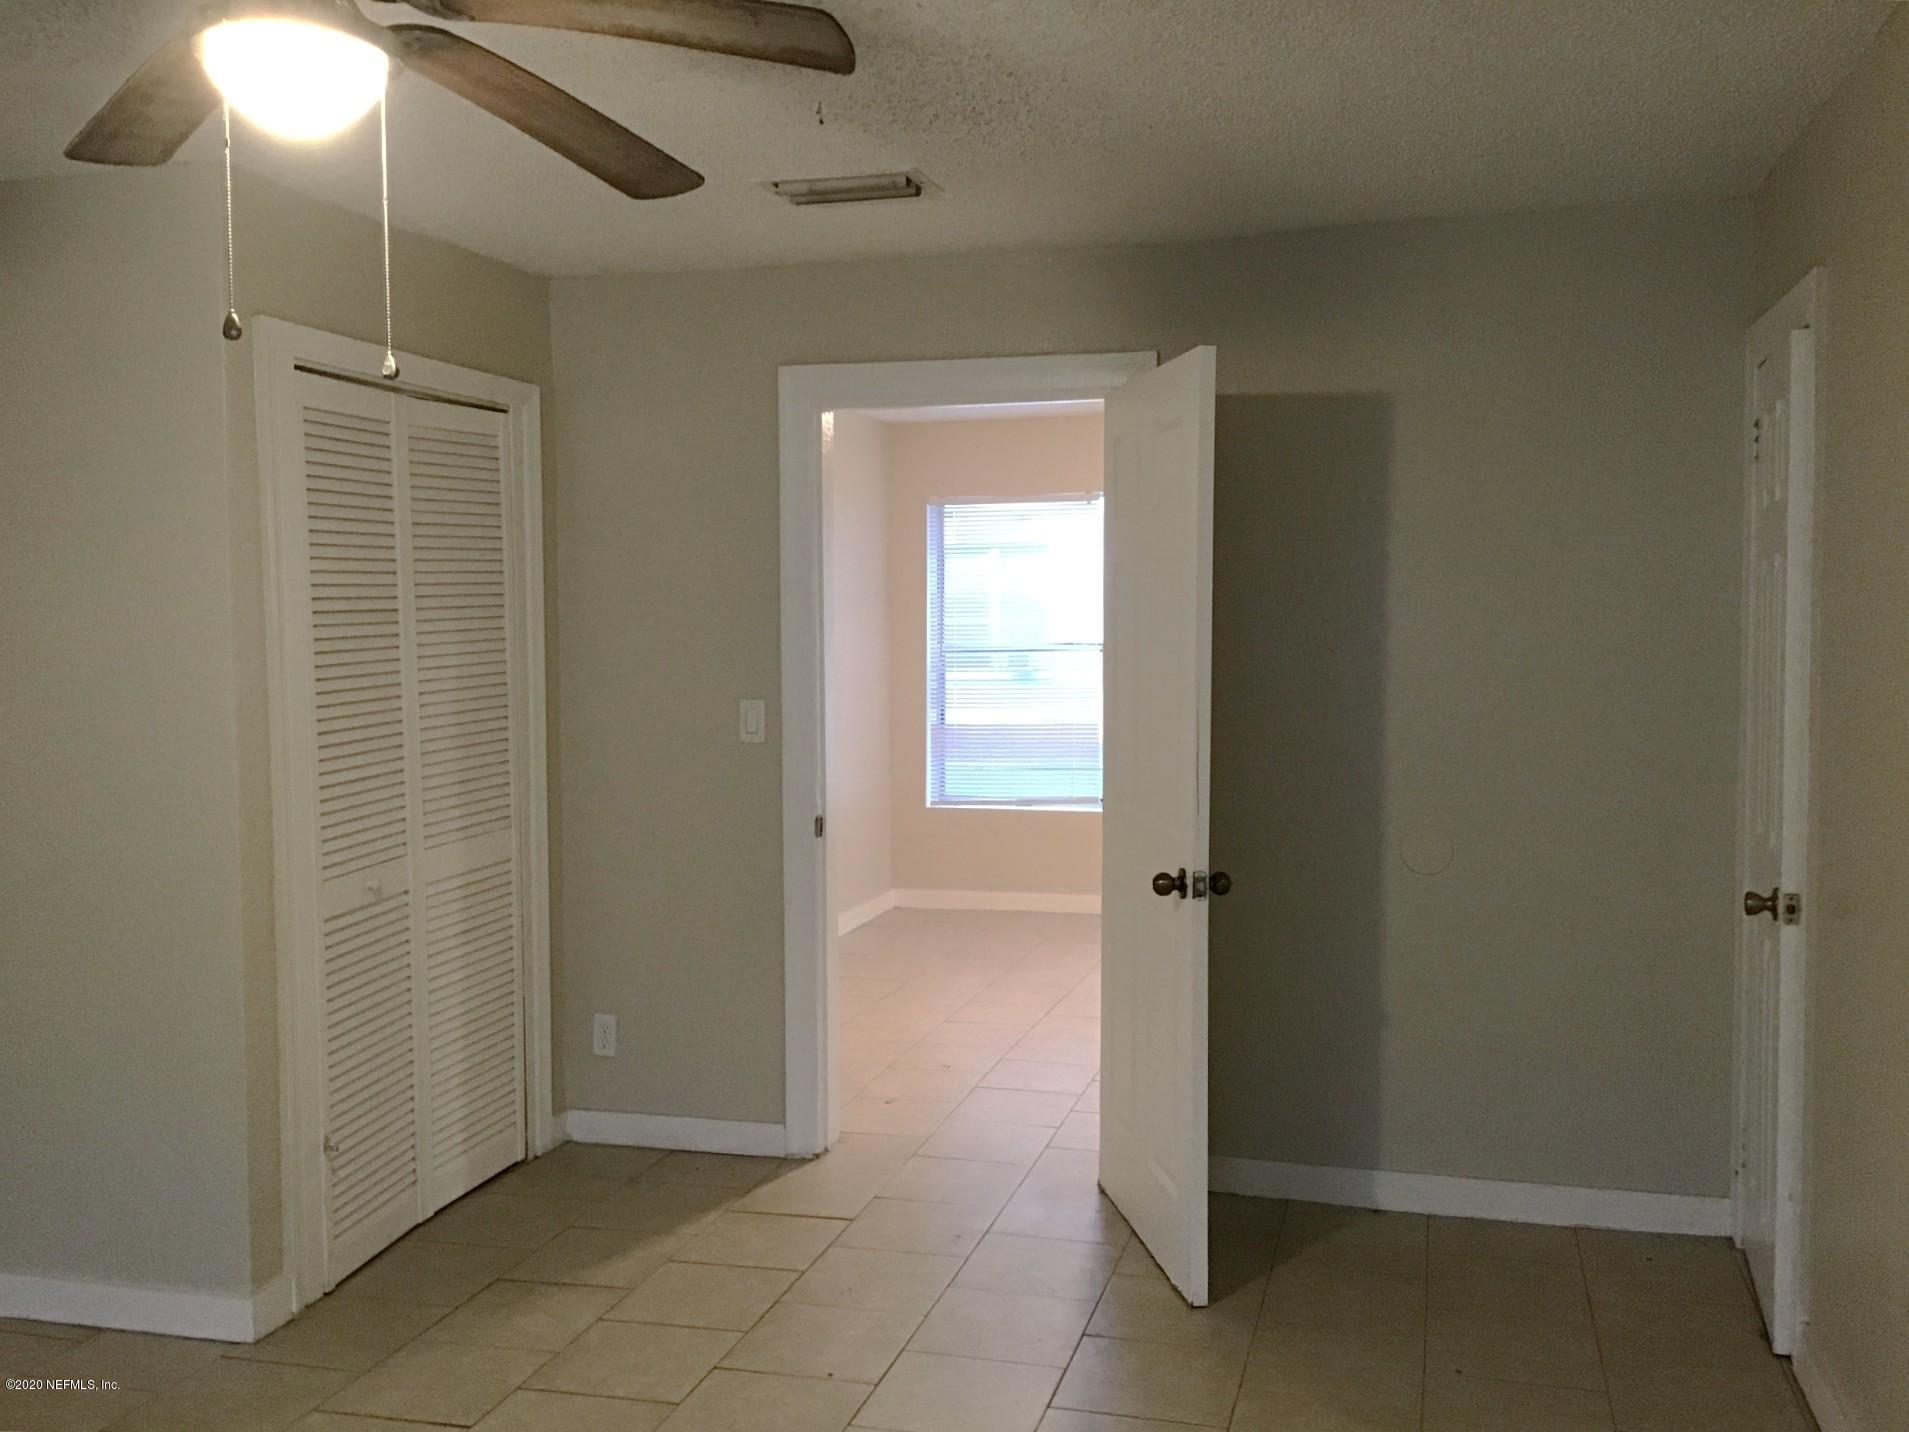 1340 9TH, JACKSONVILLE, FLORIDA 32209, 3 Bedrooms Bedrooms, ,1 BathroomBathrooms,Rental,For Rent,9TH,1081326